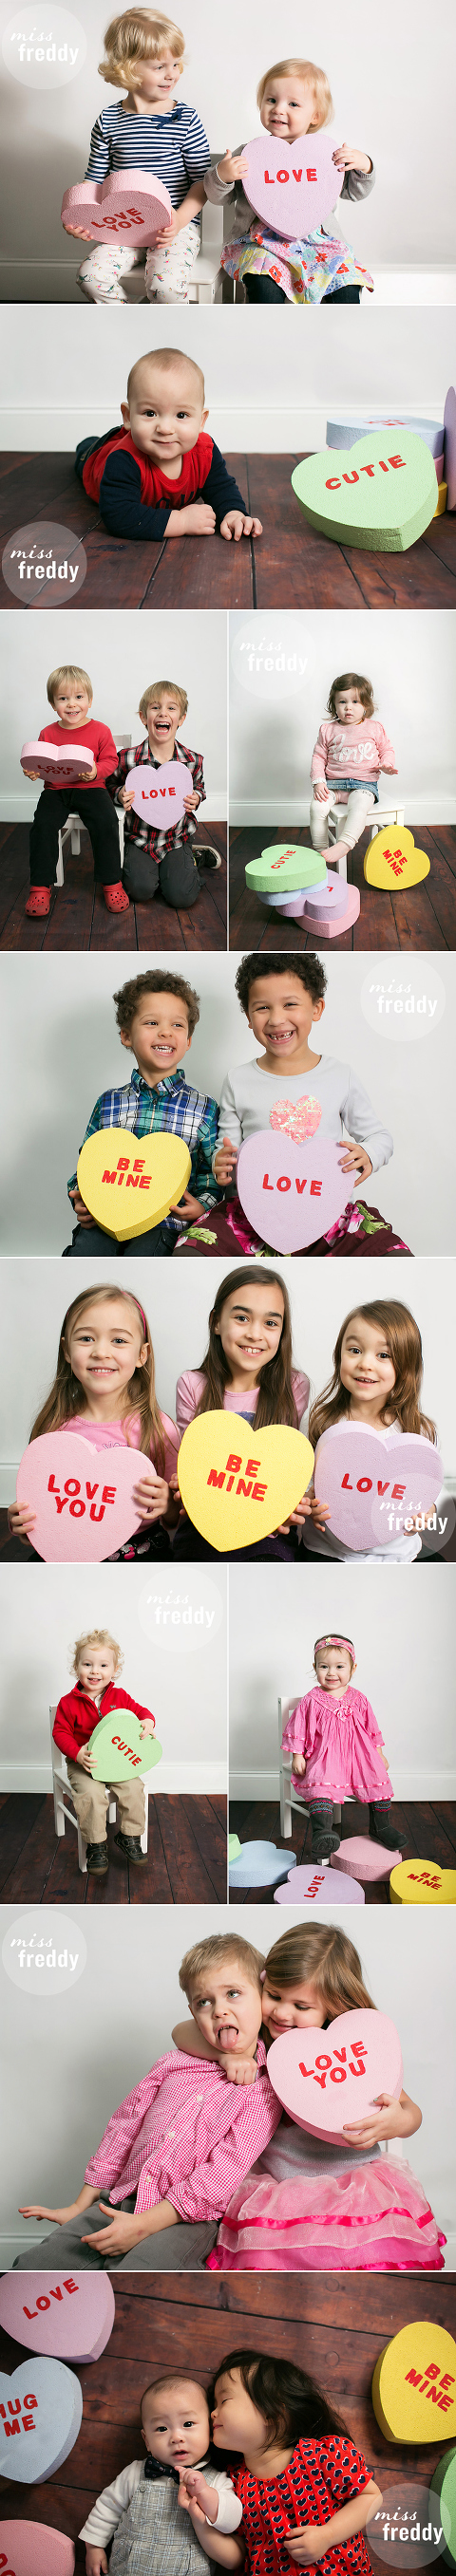 A Valentines Photo Booth? What a fun & simple idea!!